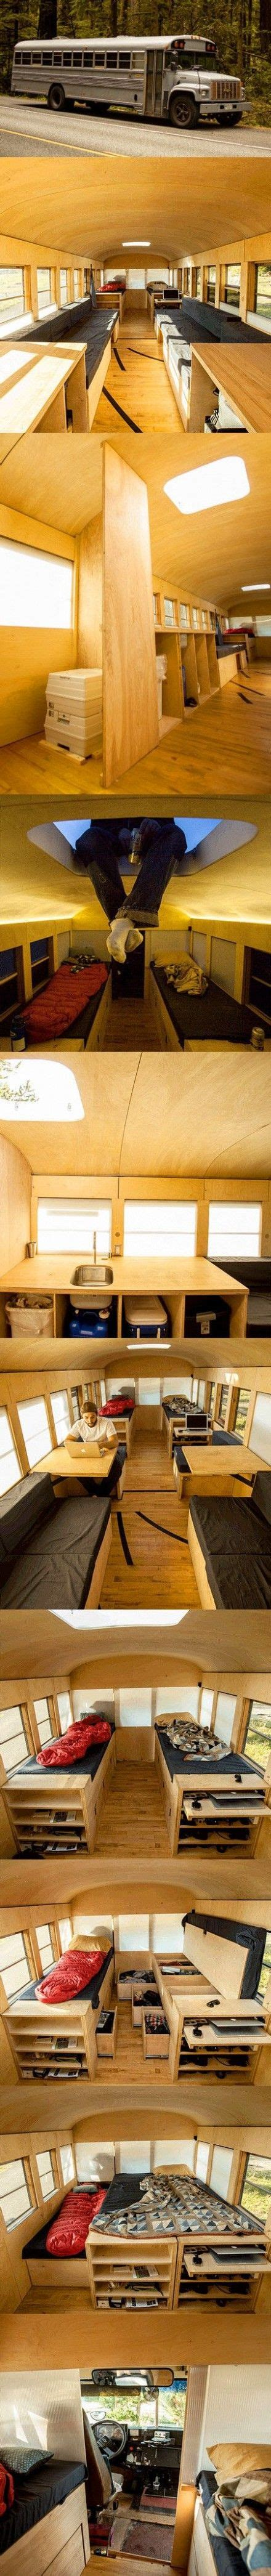 School Converted Into Small Home By Architecture Student by Architecture Student Hank Butitta Converted School